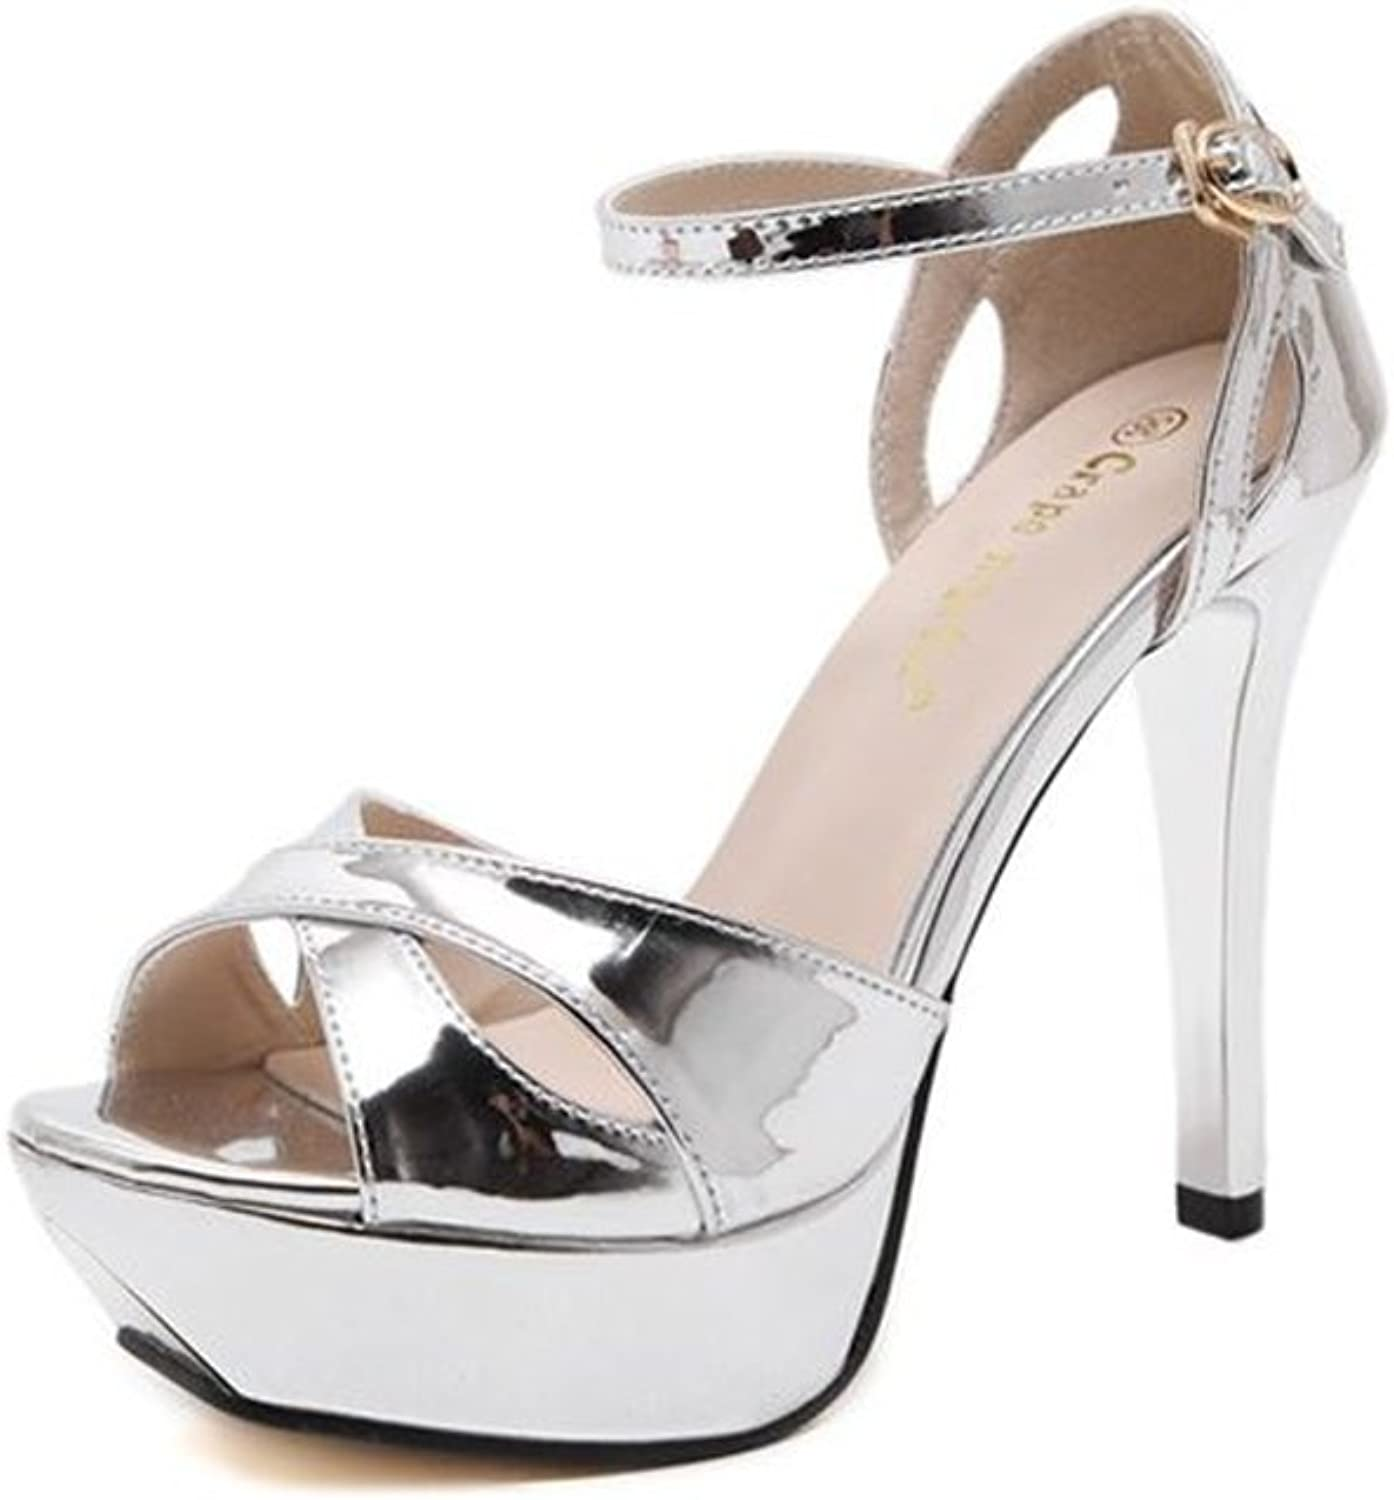 Eleganceoo Women's Pointed Toe Ankle Strap High Heel Stiletto Pumps shoes.